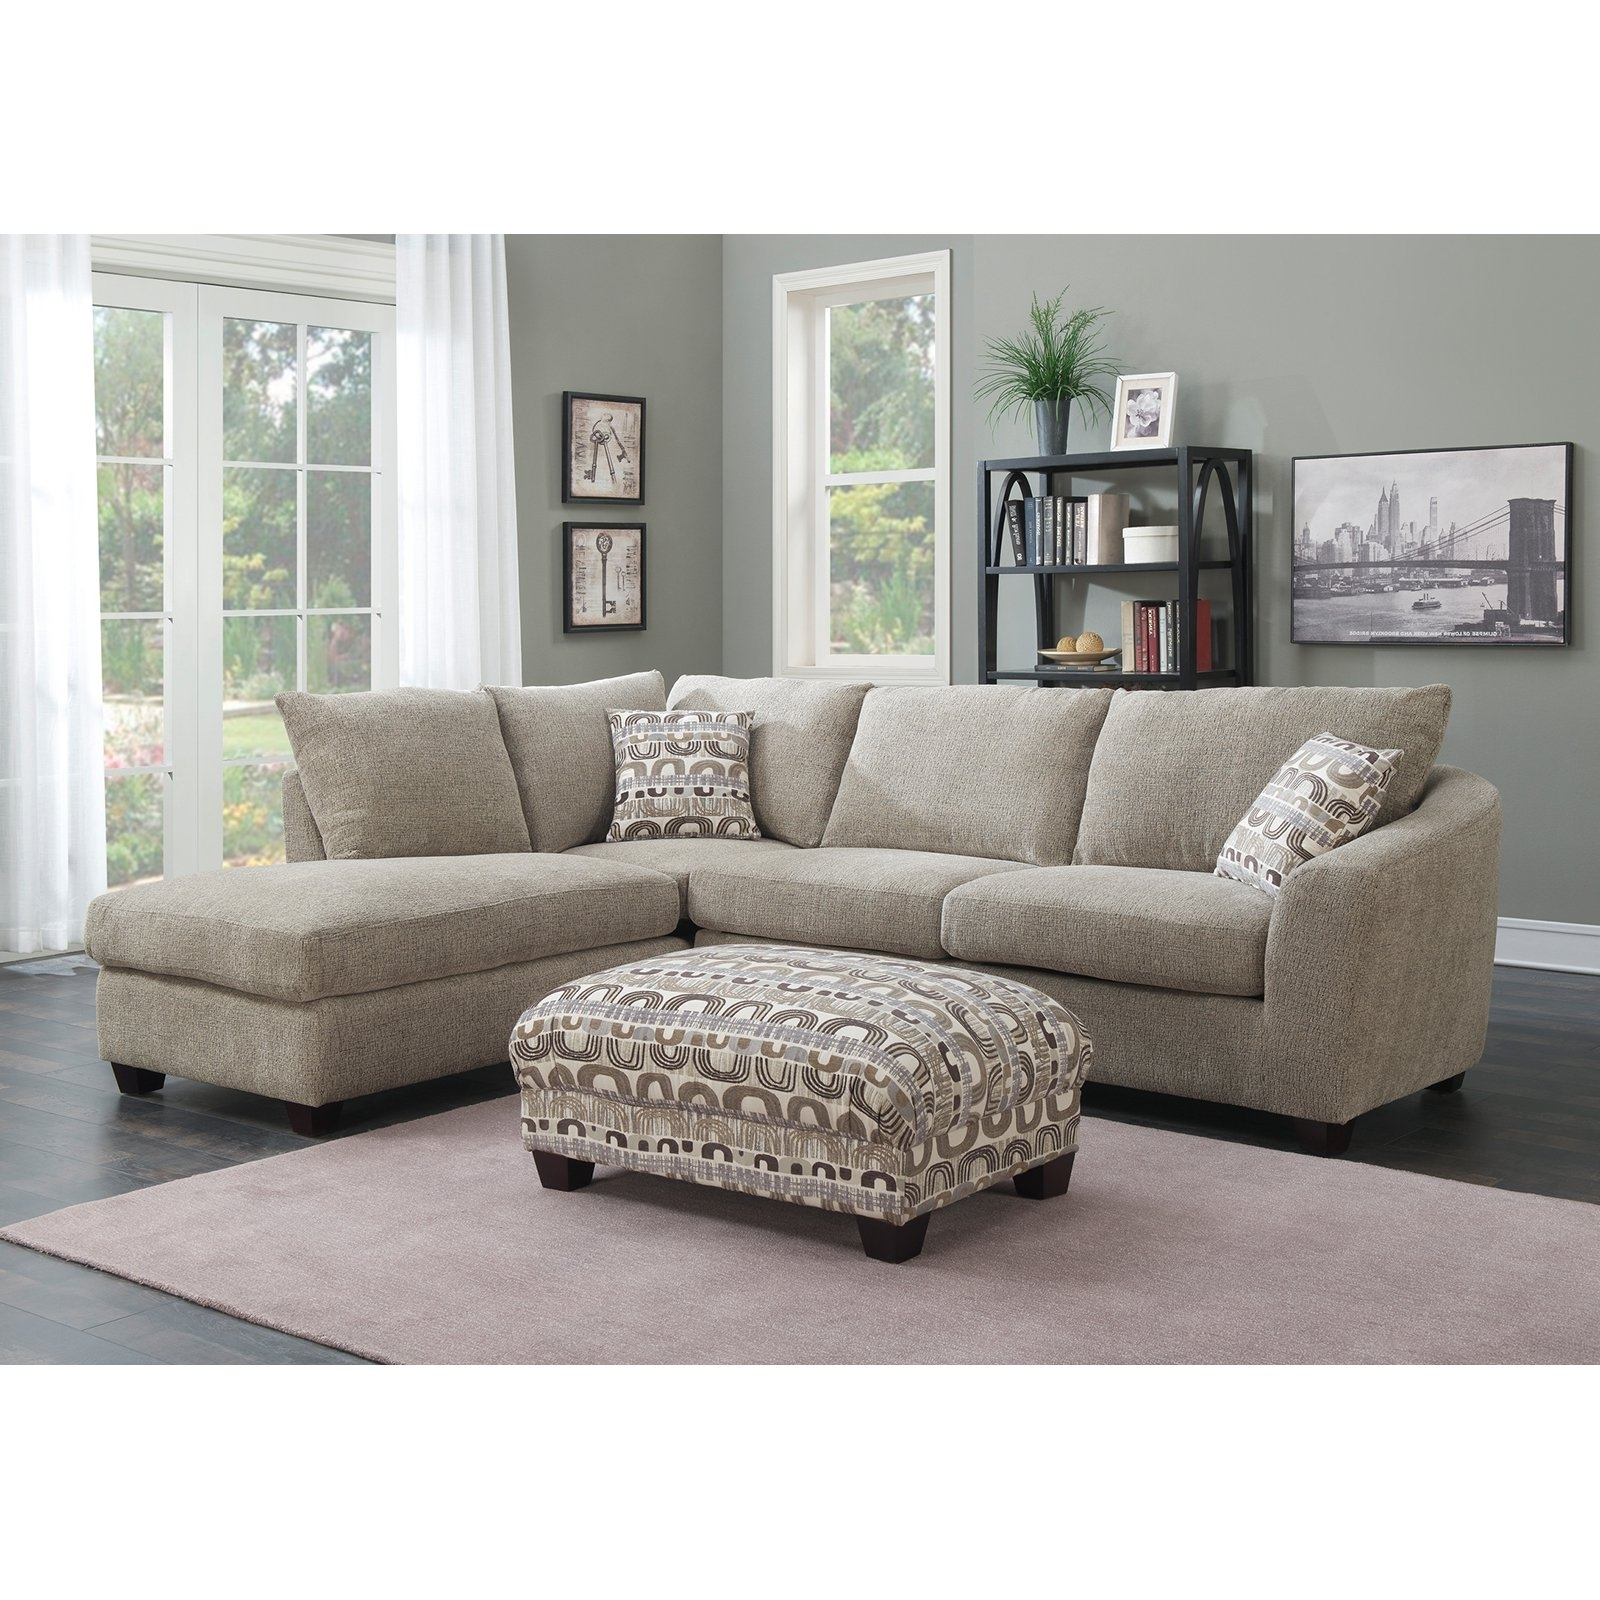 2 Piece Sectionals With Chaise With Favorite Emerald Home Urbana 2 Piece Sectional Sofa With Chaise – Walmart (View 2 of 15)